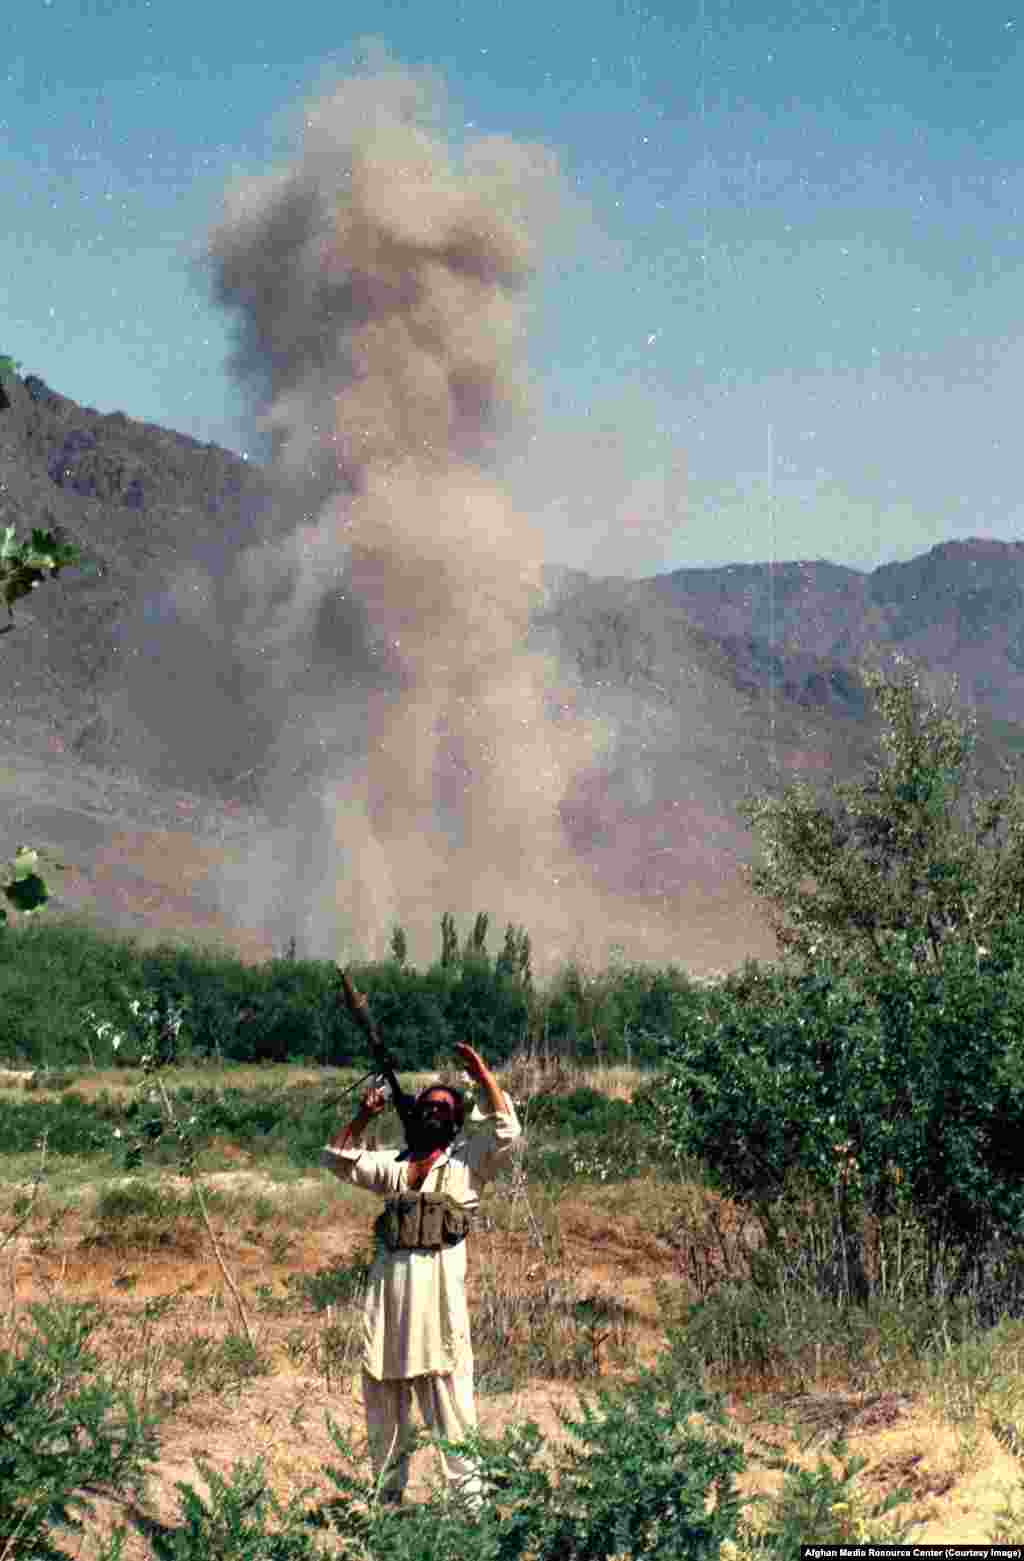 A mujahedin fighter scans the sky after an air strike. As conditions became increasingly risky for foreign journalists inside Afghanistan (in 1984 a Soviet diplomat vowed any journalist caught with mujahedin fighters would be killed), Washington also funded a controversial program to supply Afghan rebels with cameras.